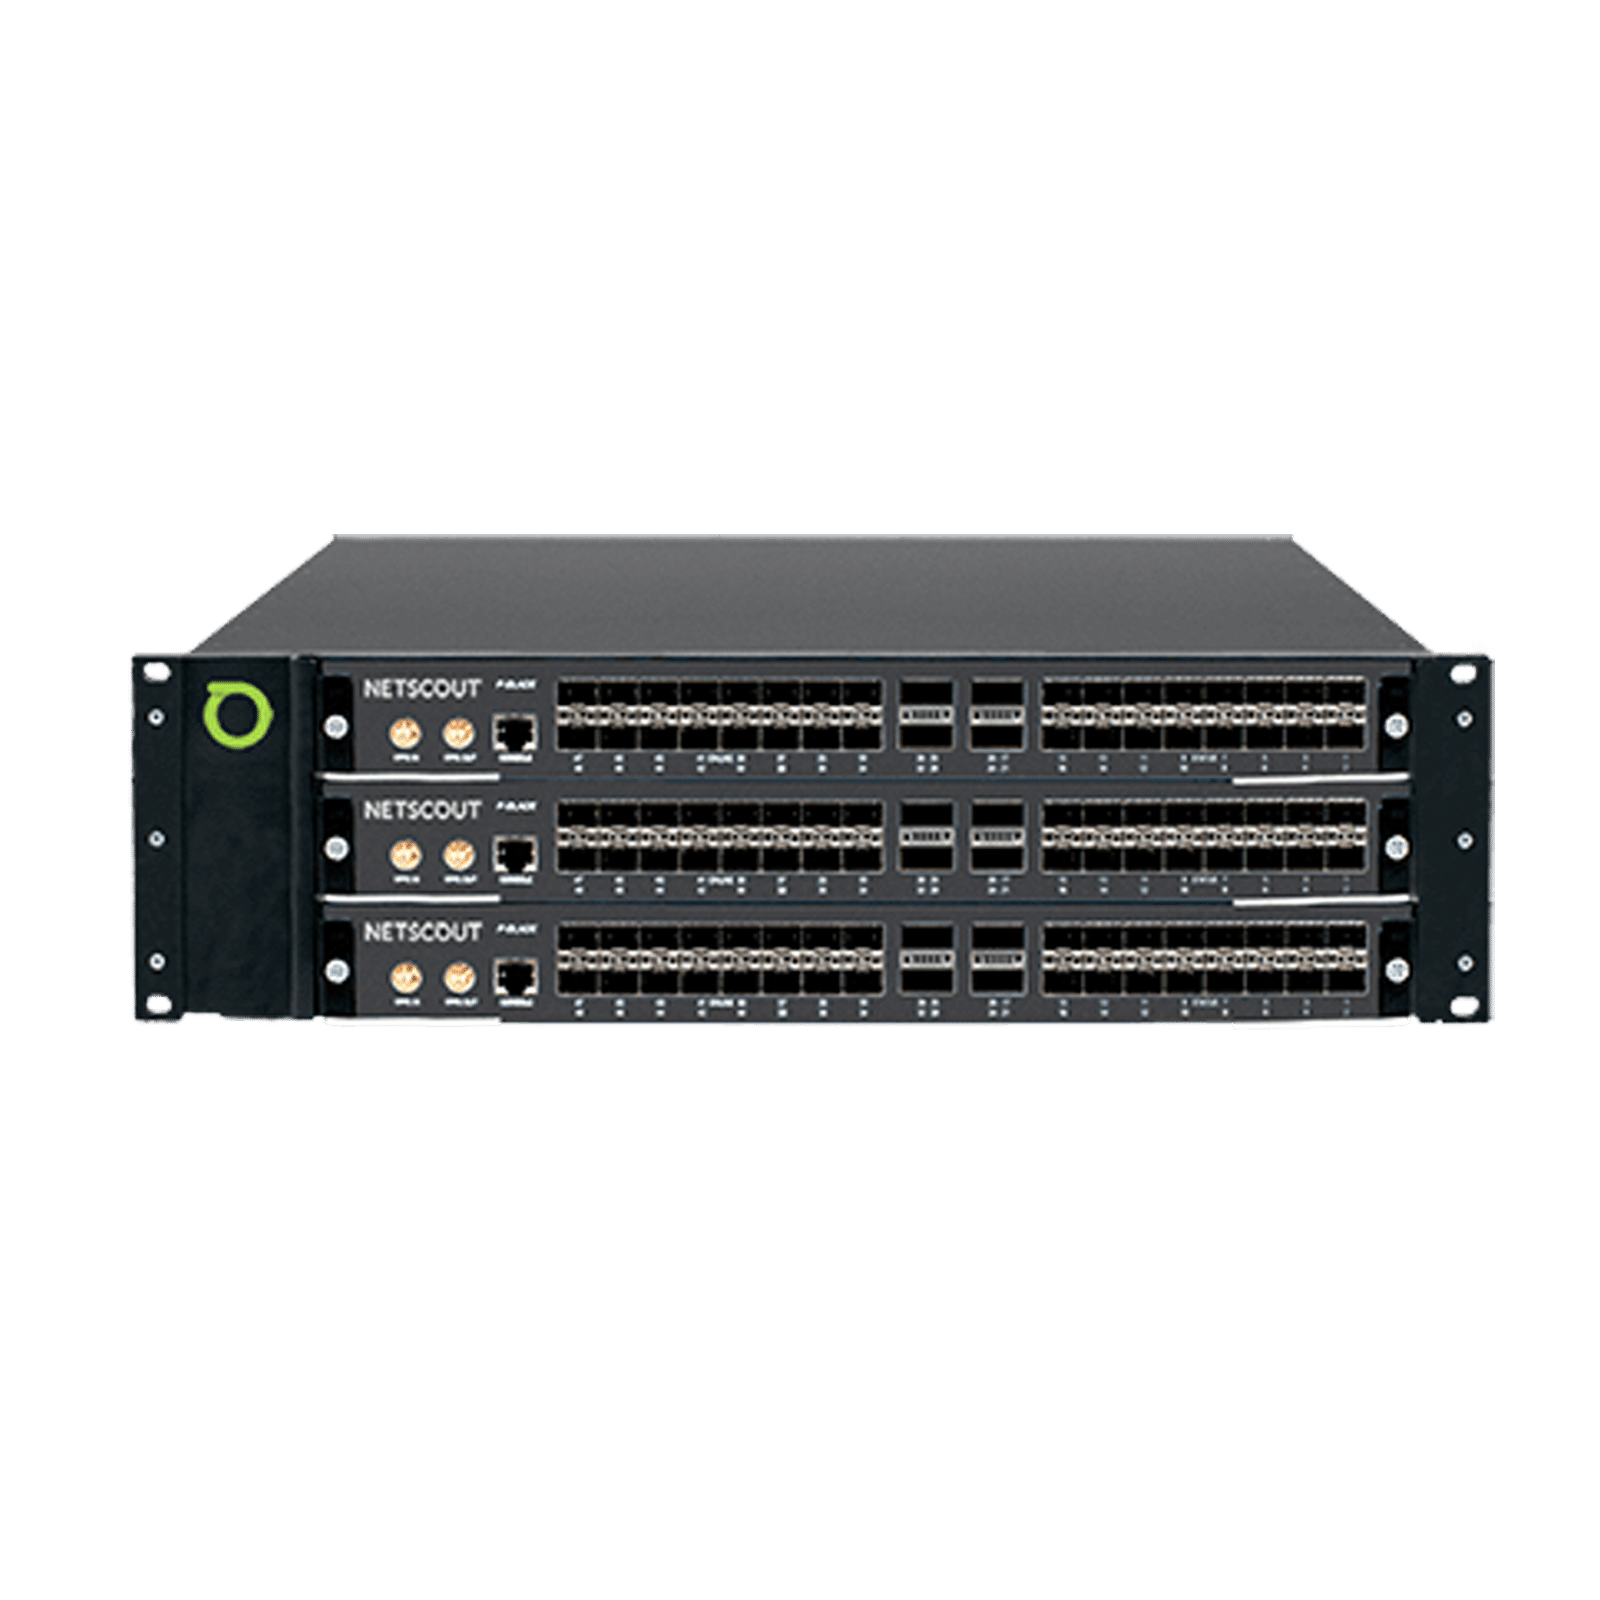 Netscout nGenius 3900 Series Packet Flow Switch - Frame